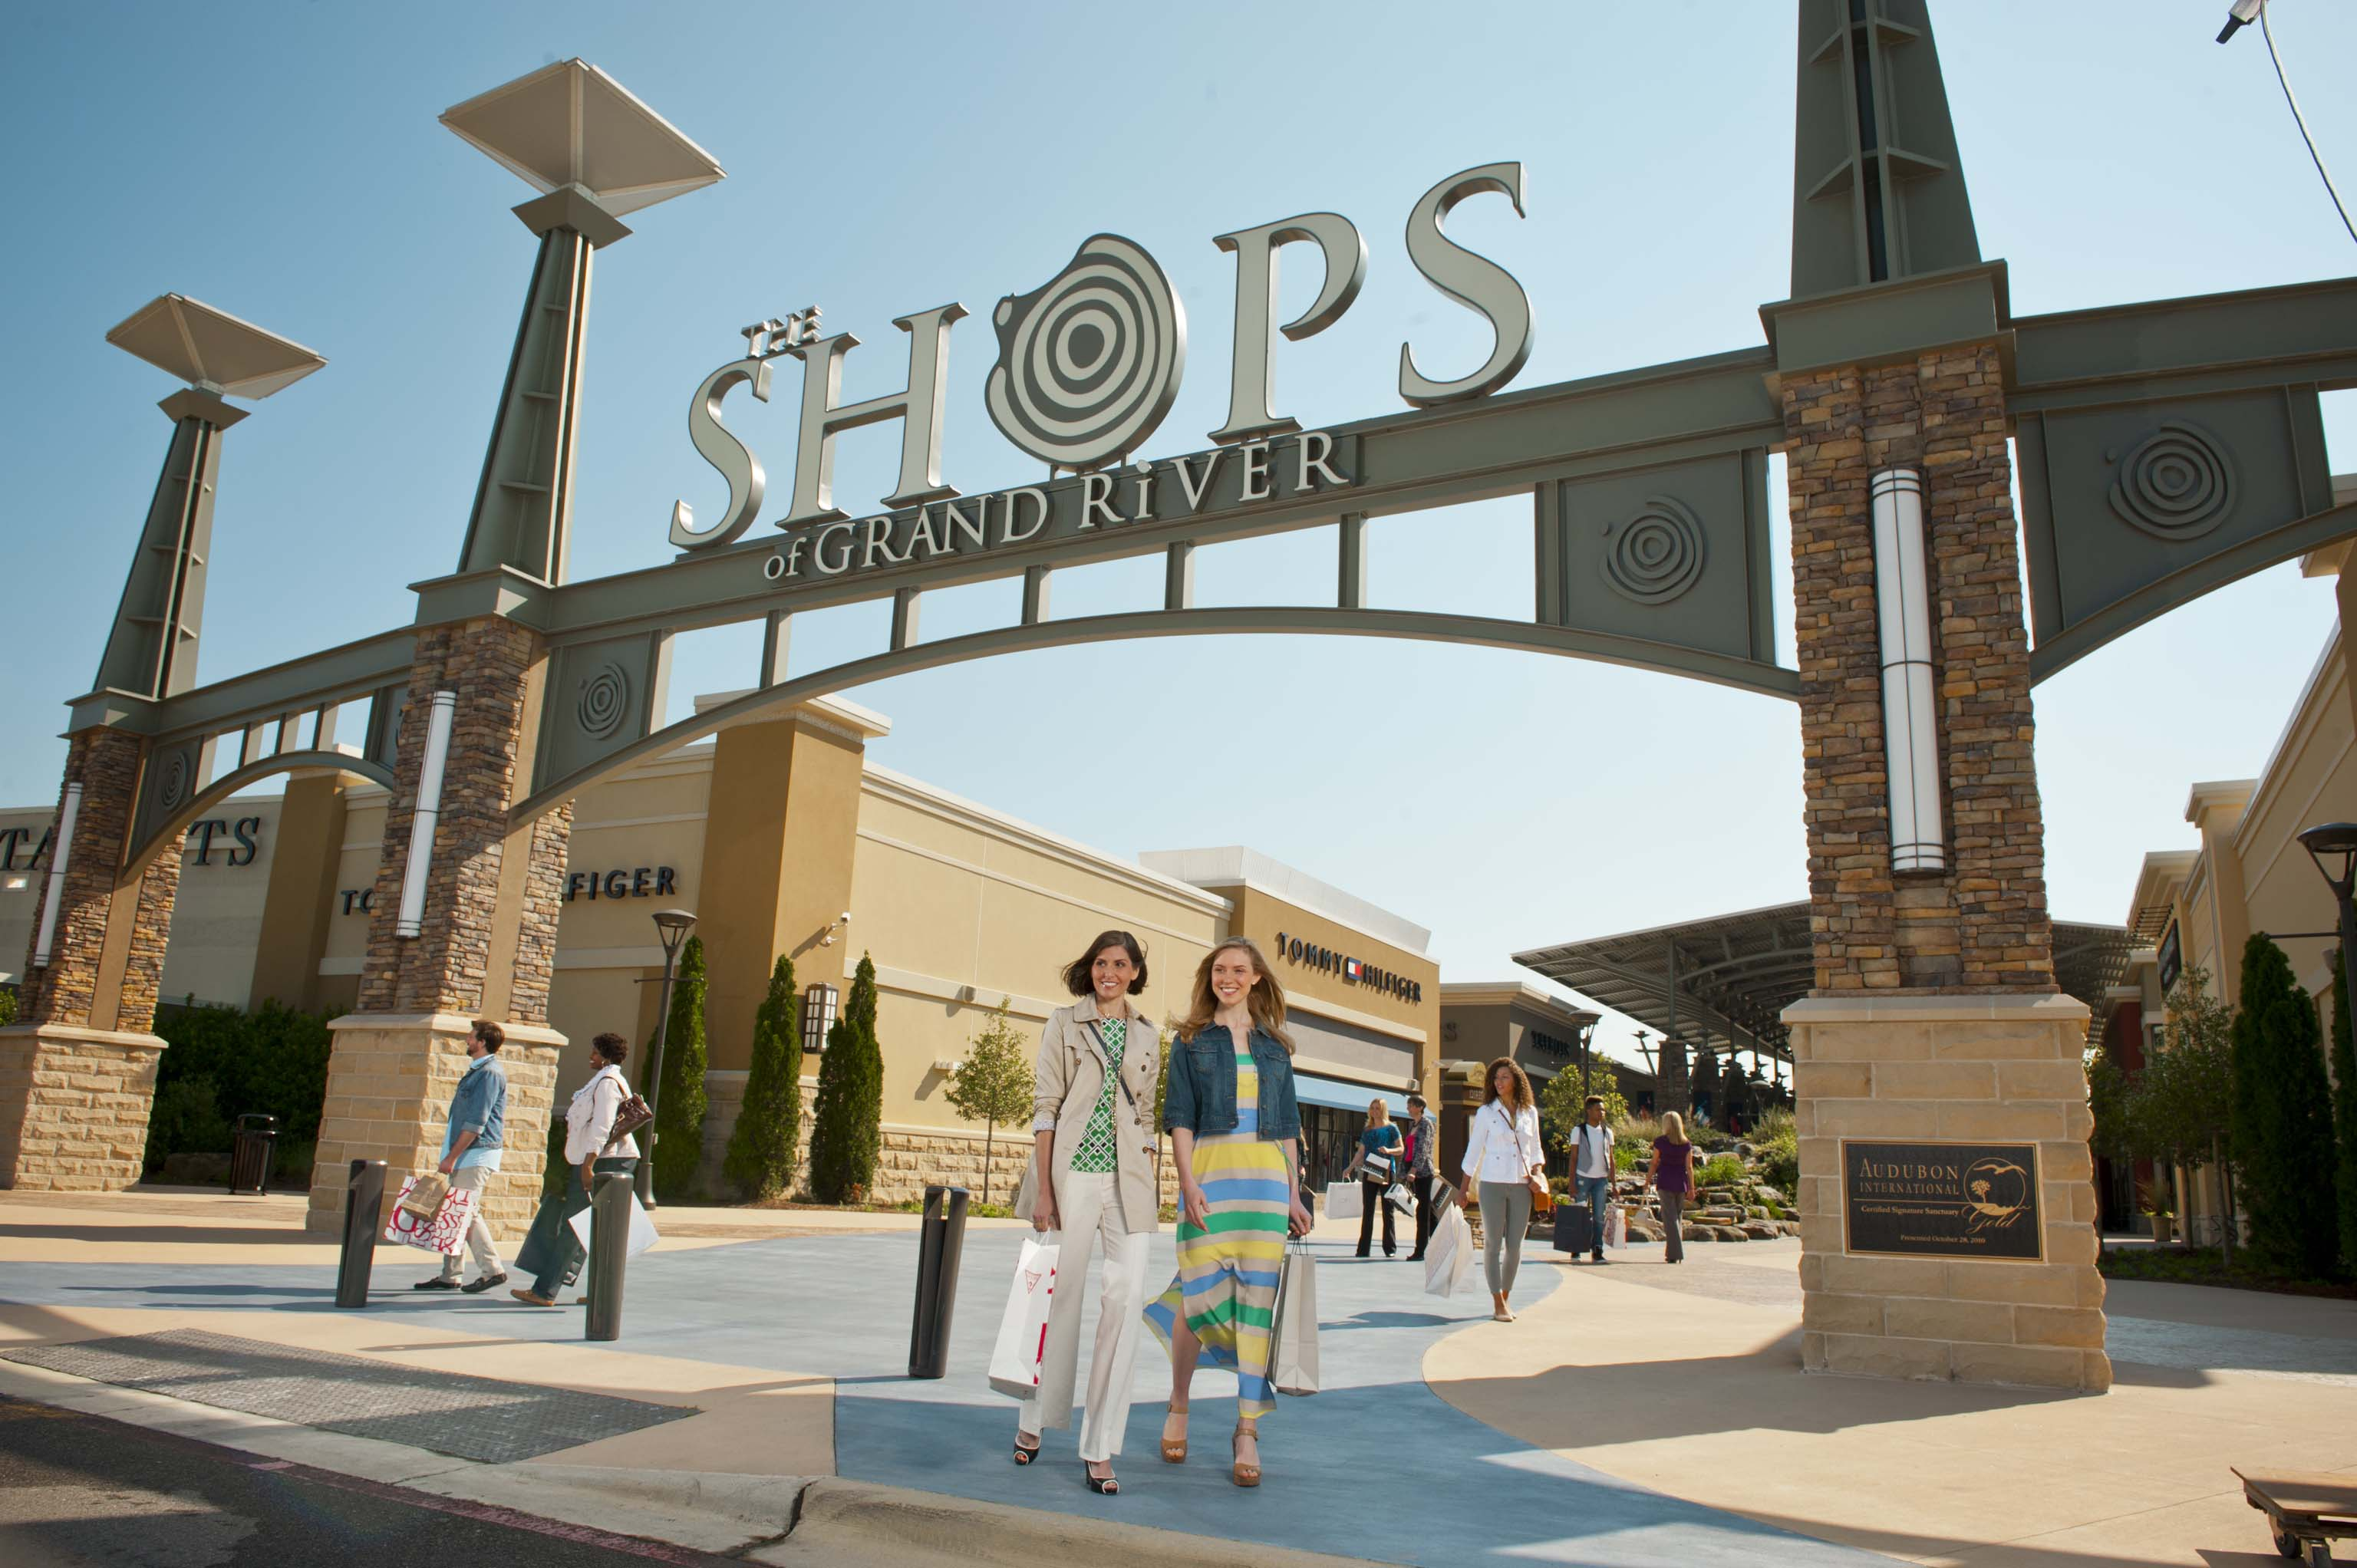 St John's Designer Clothing Outlet The Outlet Shops of Grand